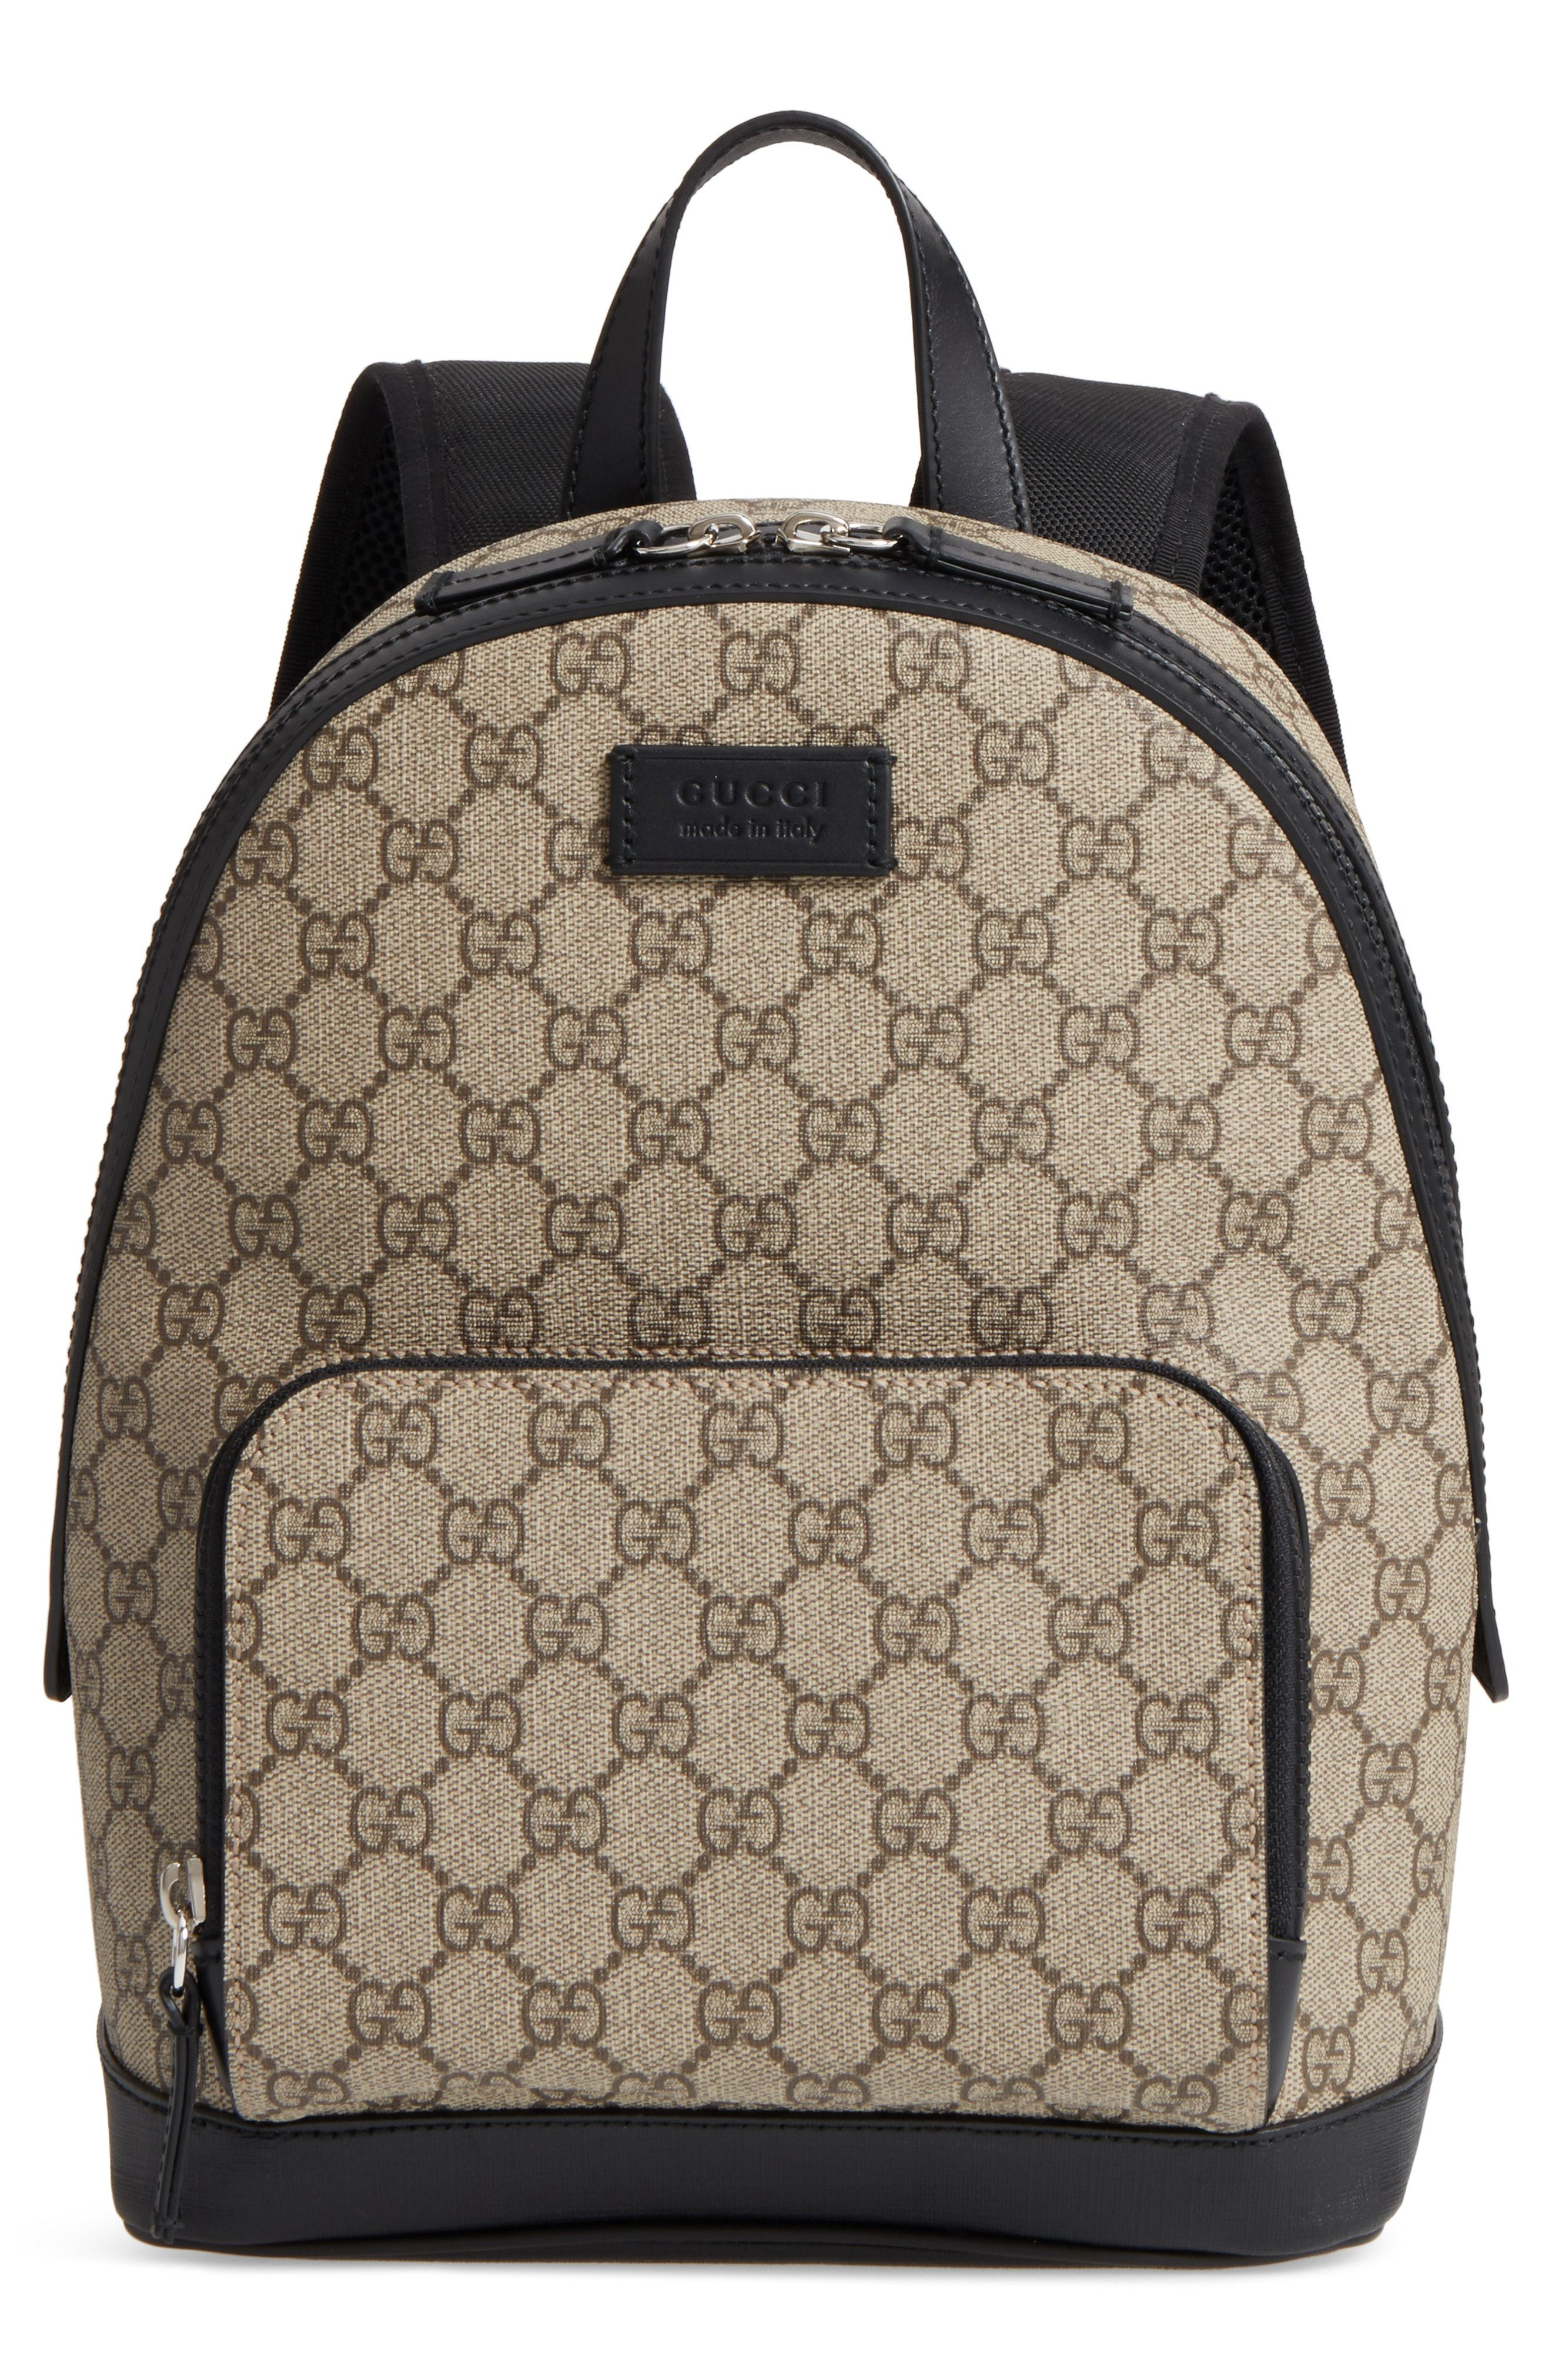 941df8cc6e8 GUCCI EDEN CANVAS BACKPACK - BEIGE.  gucci  bags  leather  canvas  backpacks